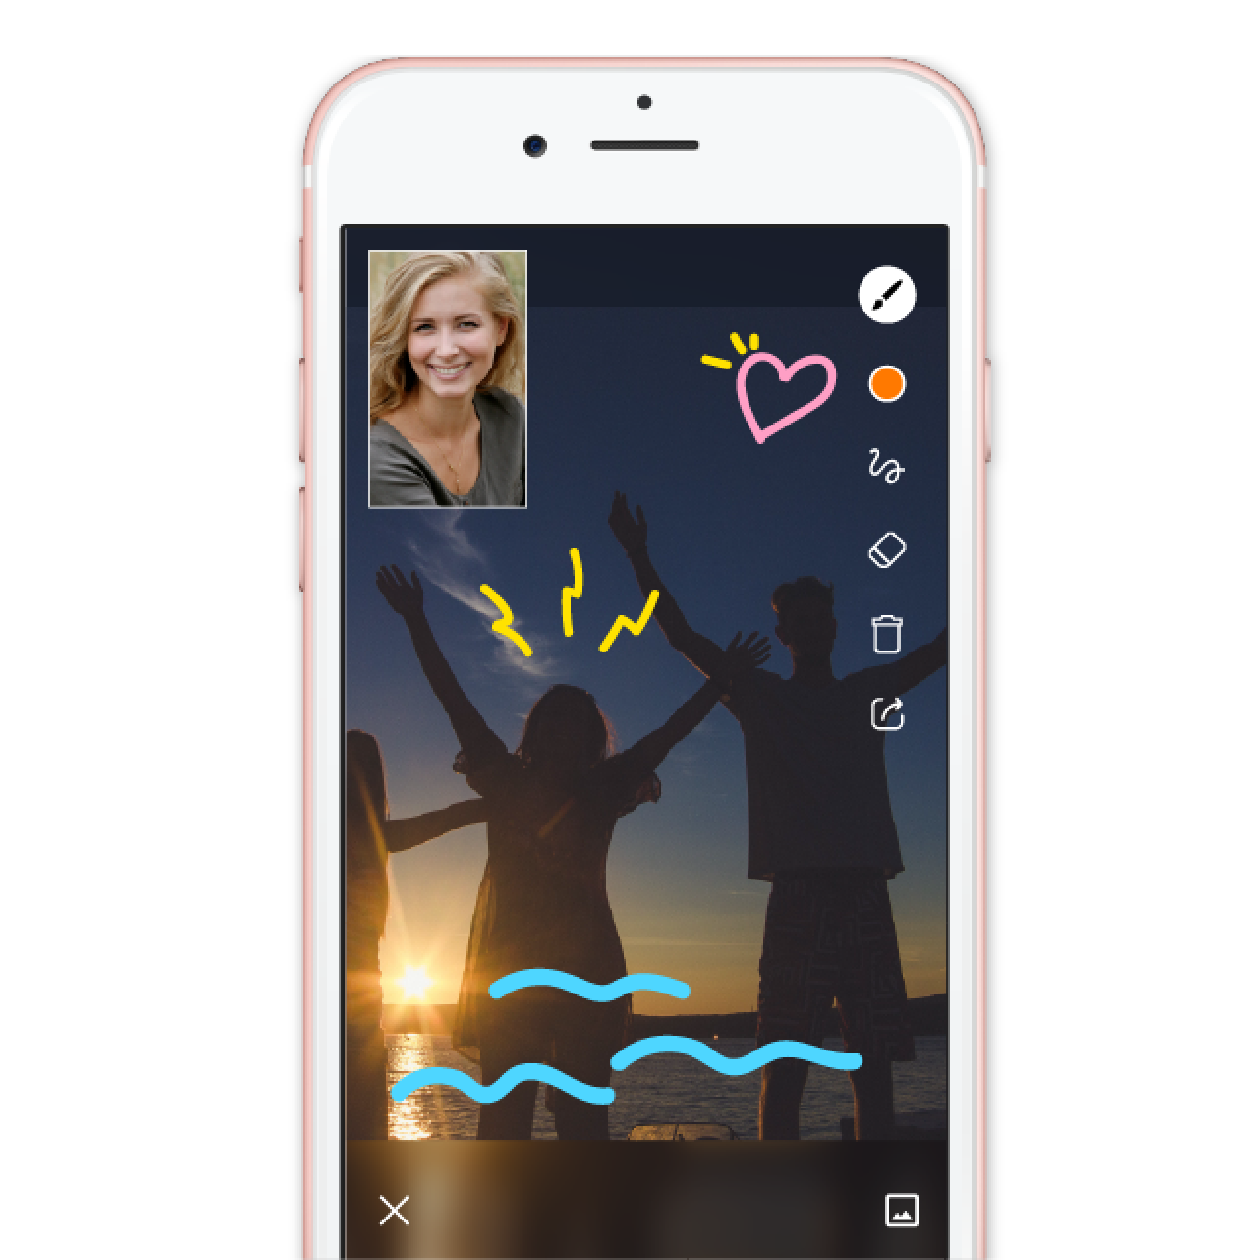 JusTalk The Best Free Video Call and Video Chat app